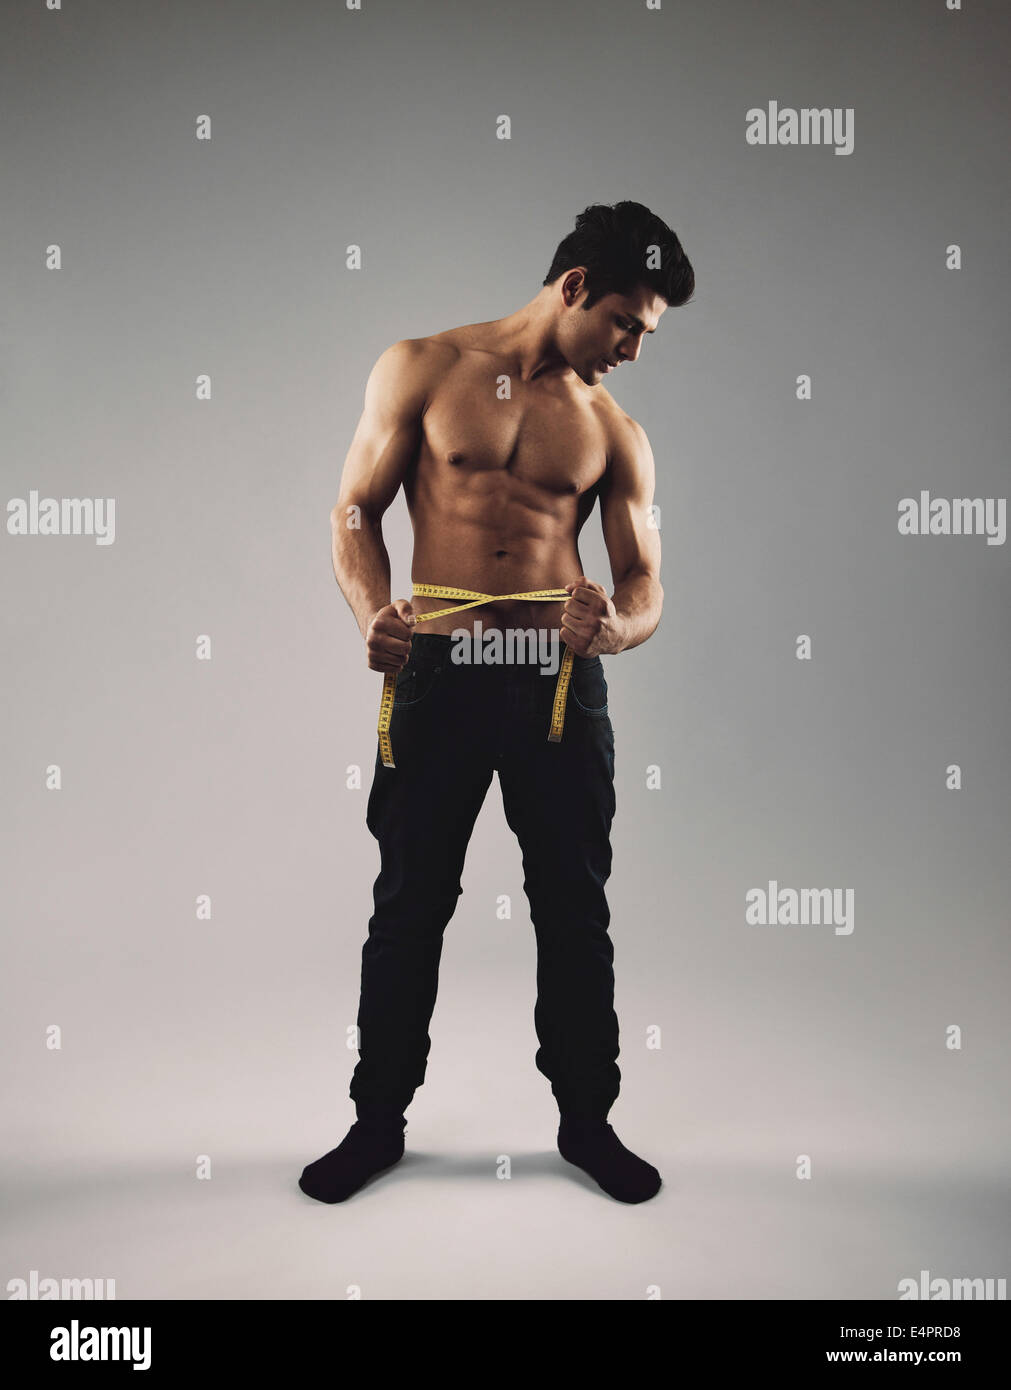 Full length image of fit young man with tape measure around his waist measuring his body. Masculine young hispanic - Stock Image